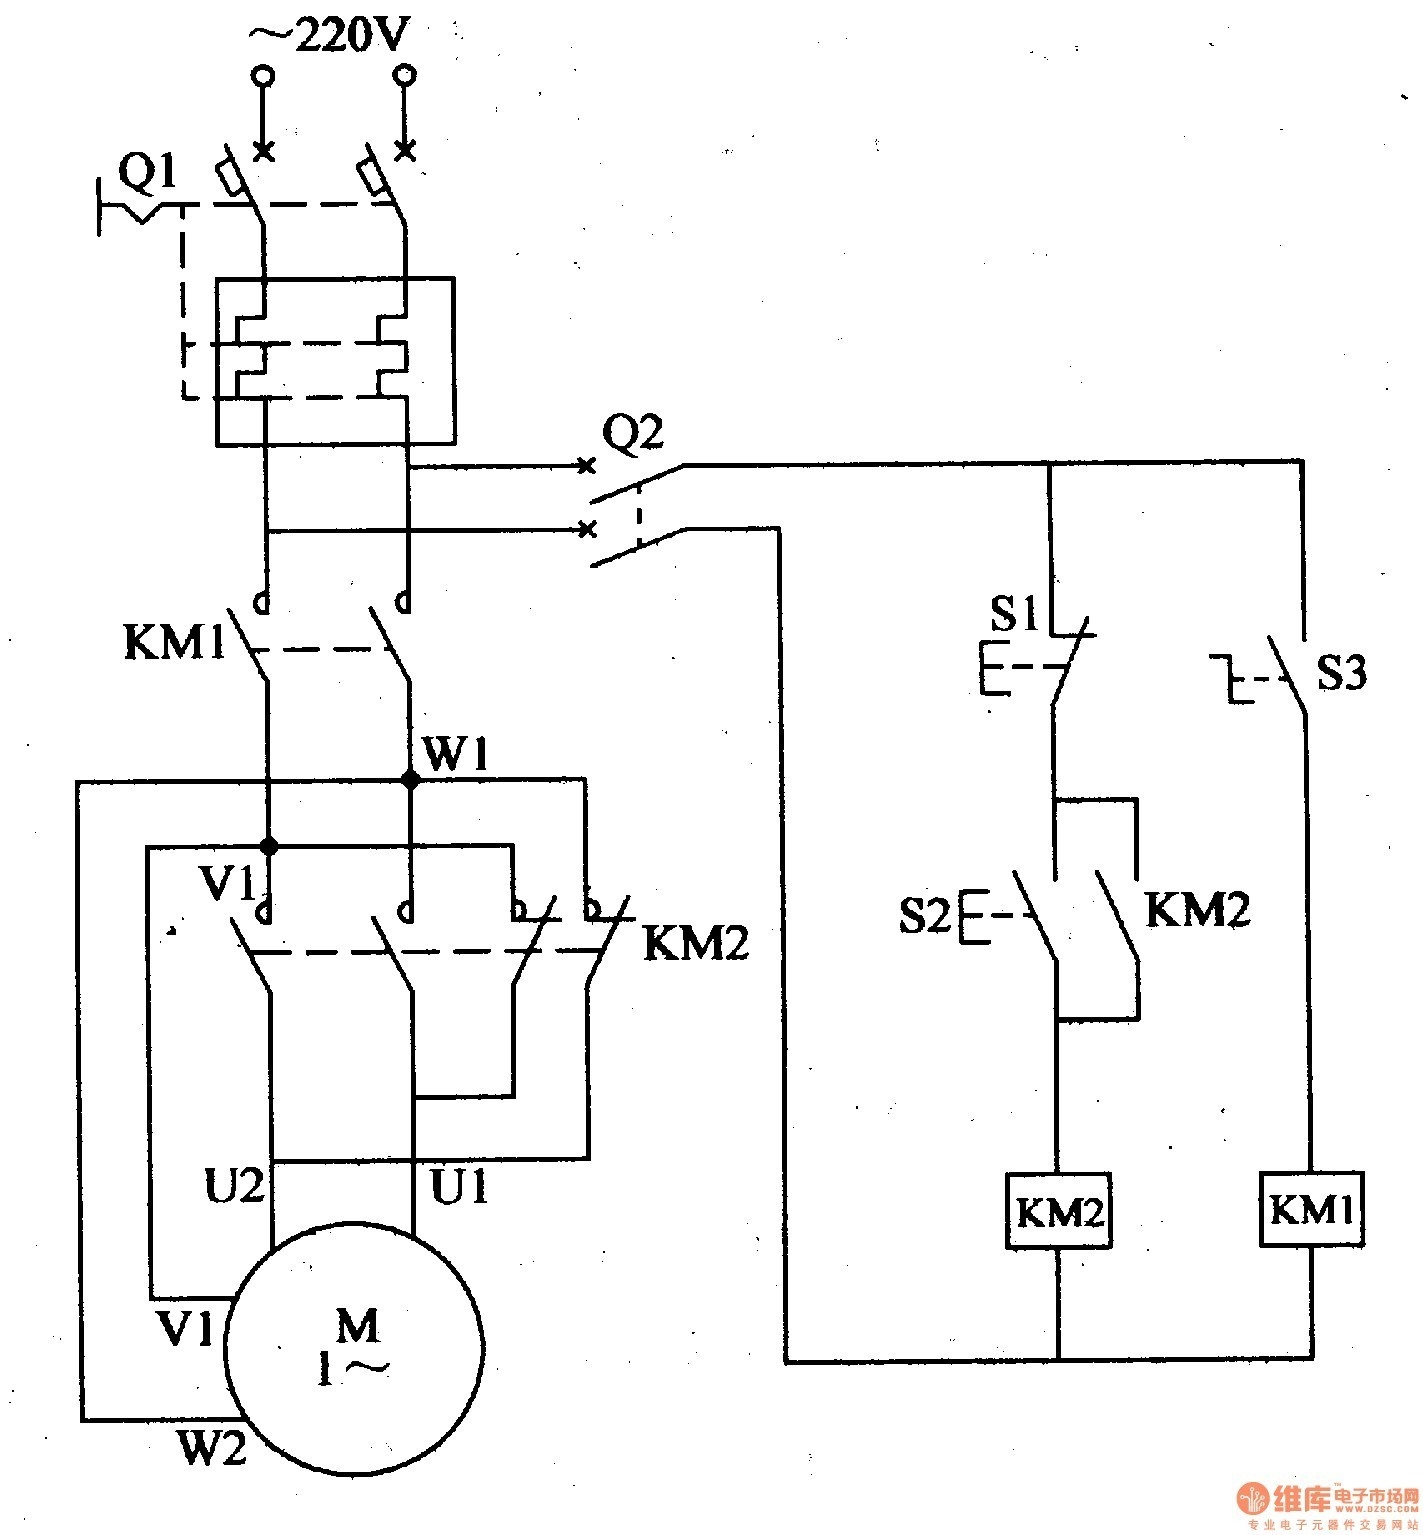 ge single phase motor wiring diagram - wiring diagram for magnetic motor  starter save wiring diagram